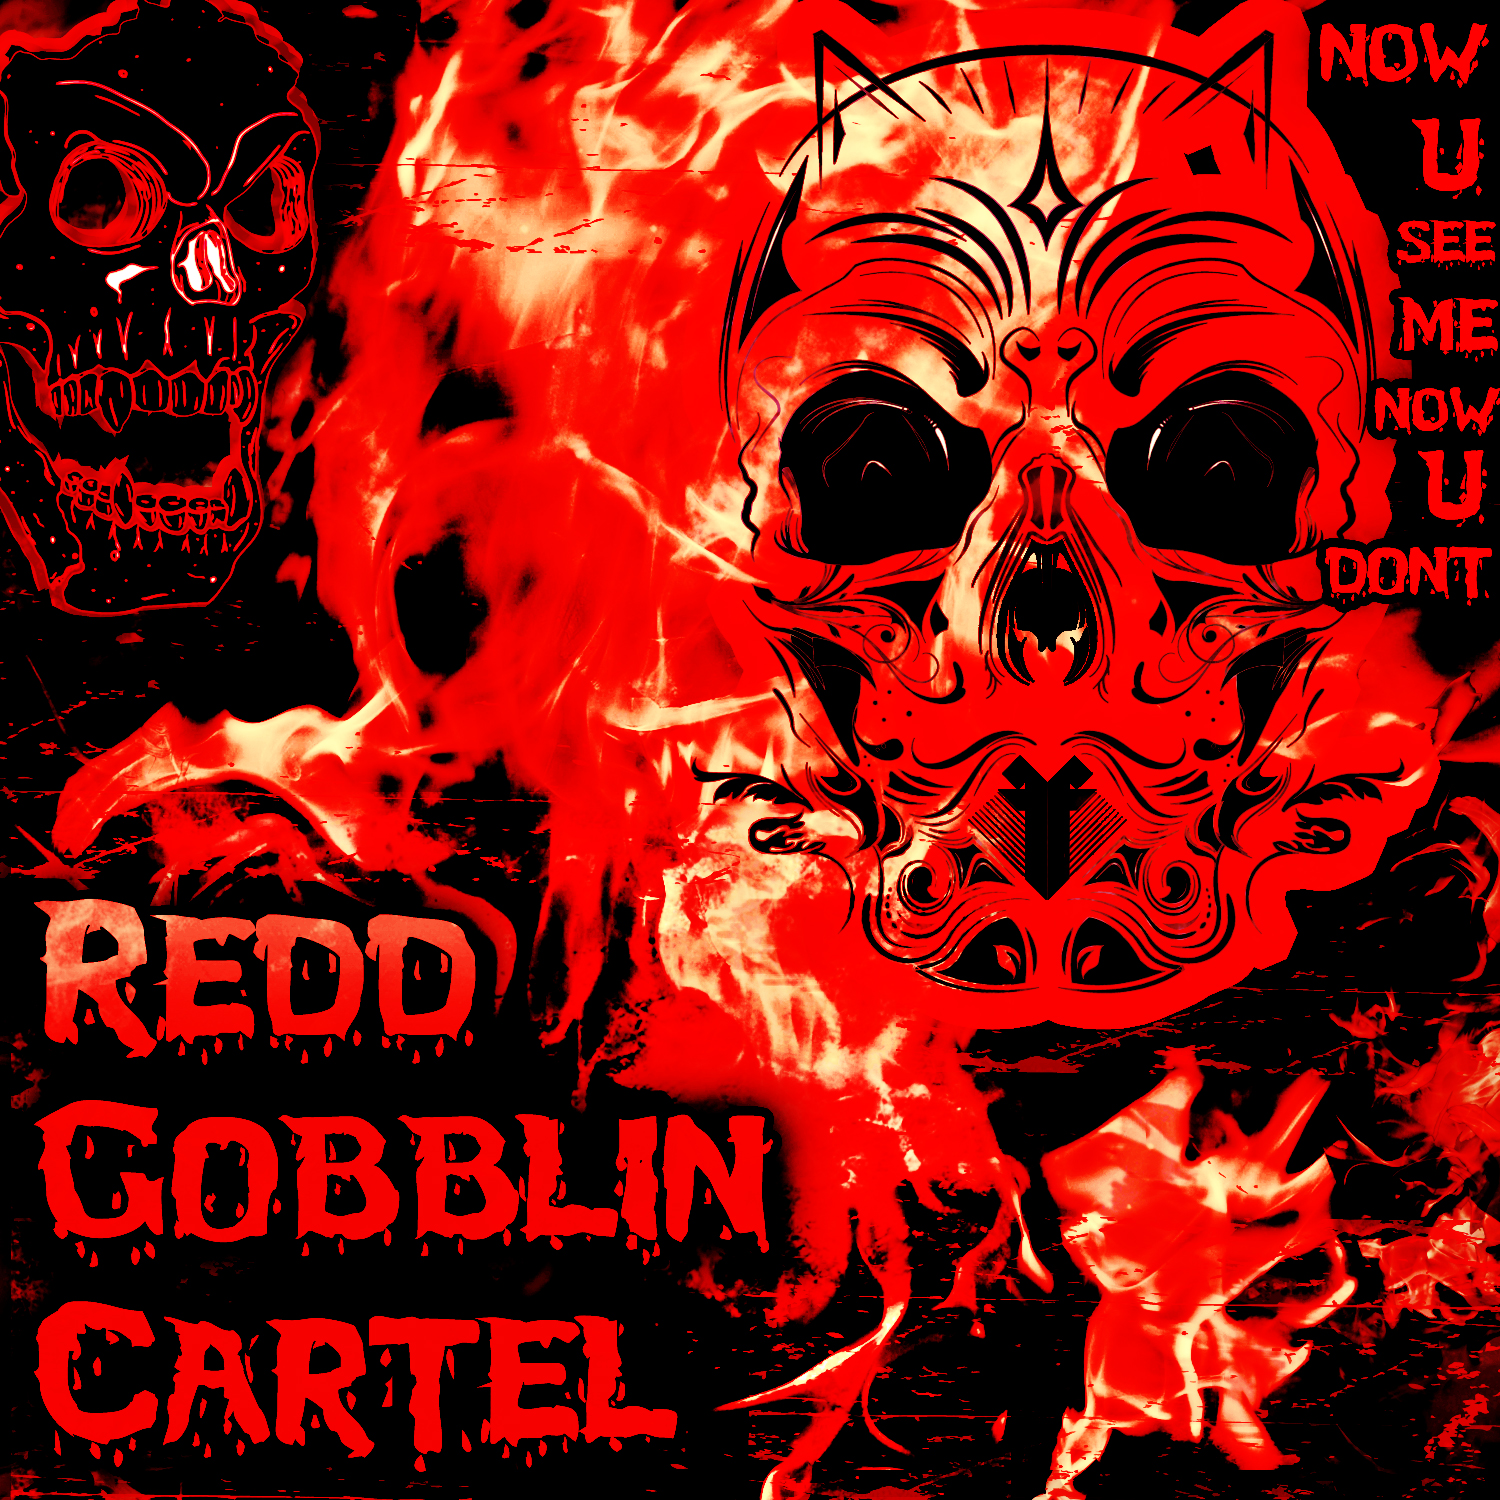 Redd Gobblin Cartel (album cover)